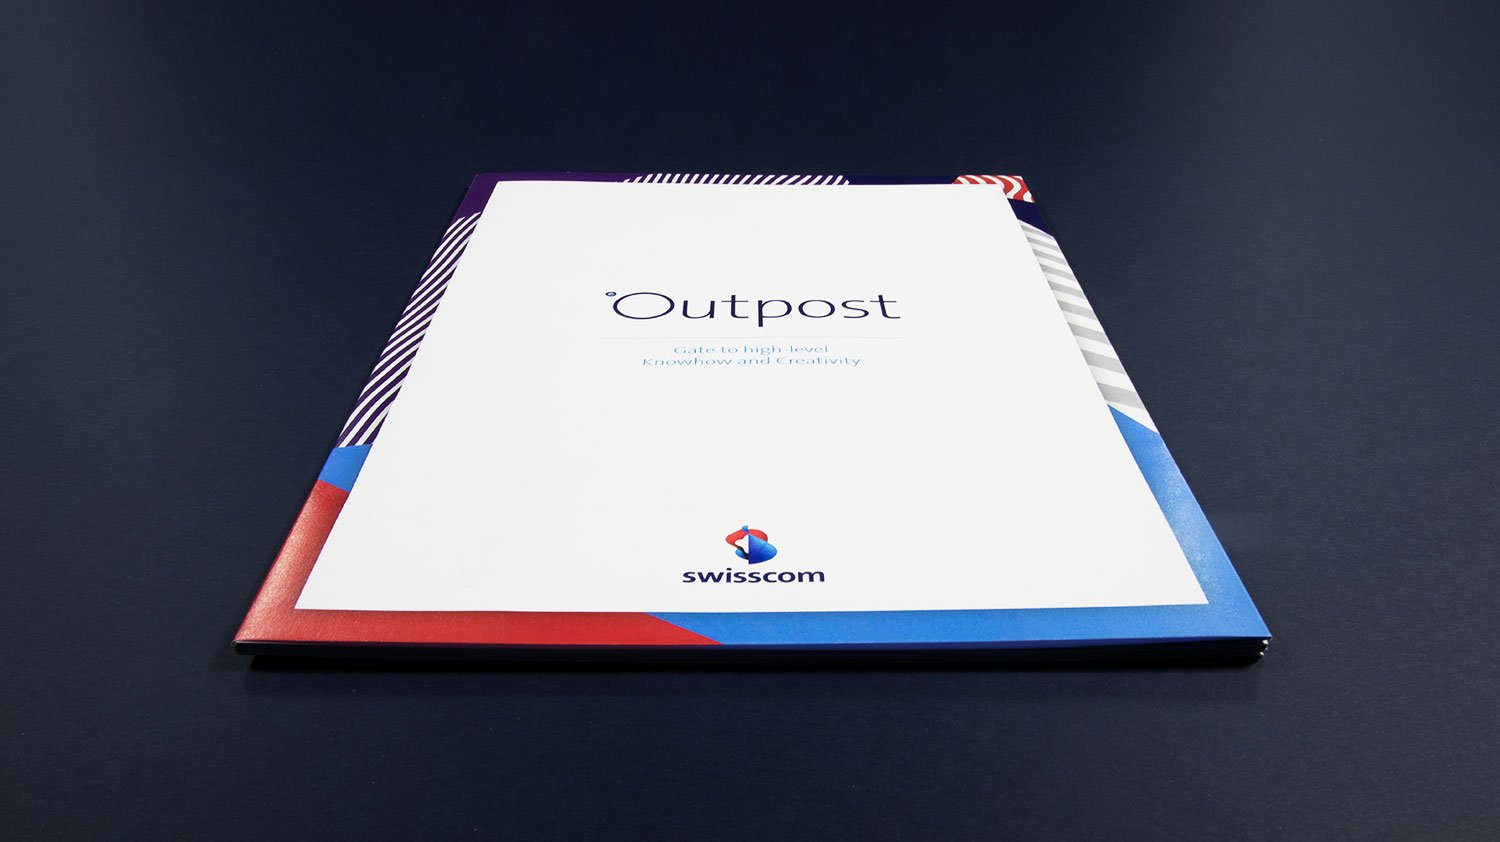 Swisscom Outpost Cover design